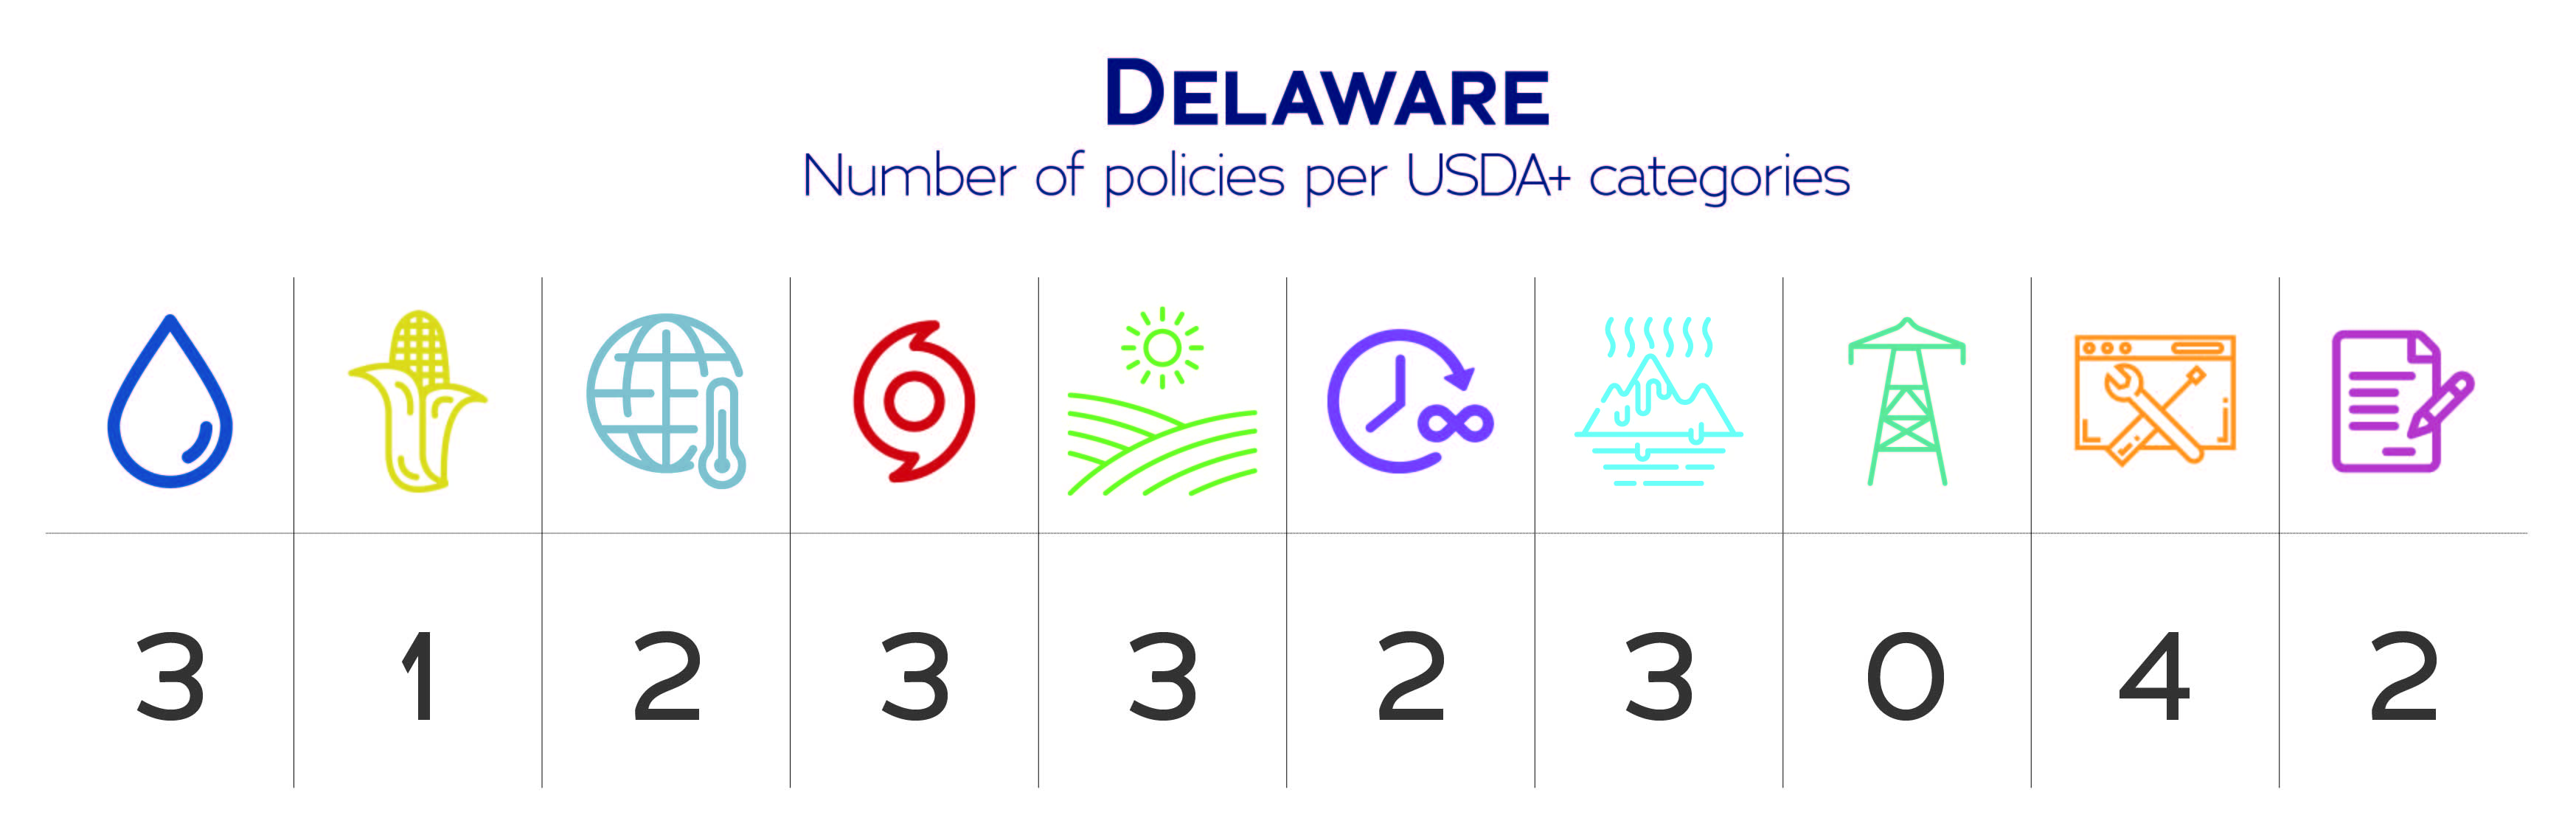 Delaware USDA+ category data